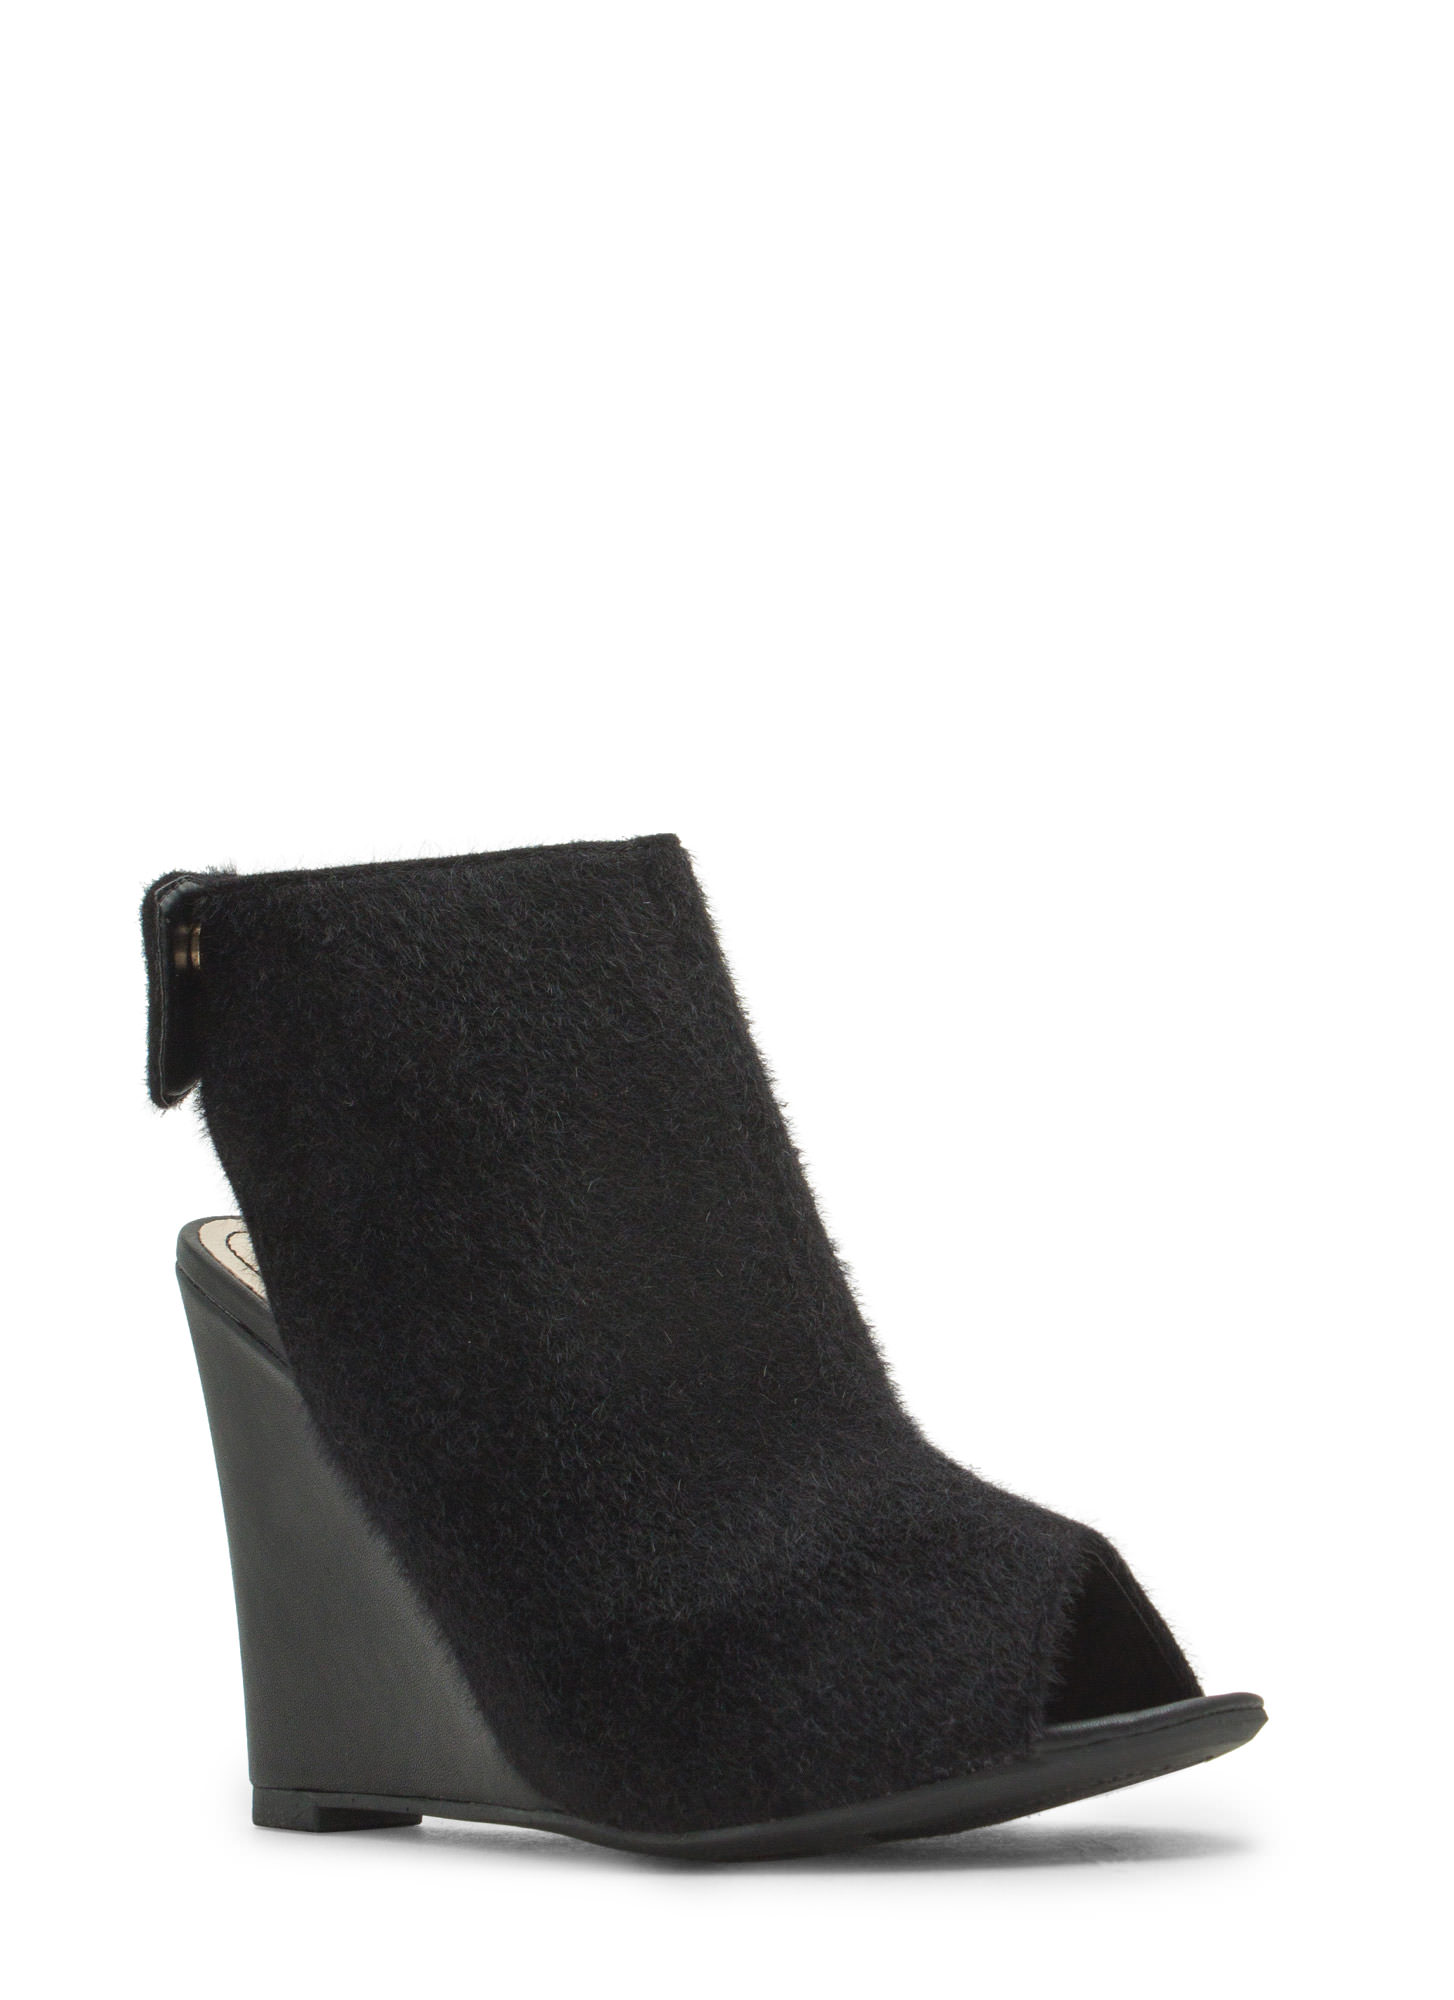 Haute 'N Chic Wedge Booties BLACK